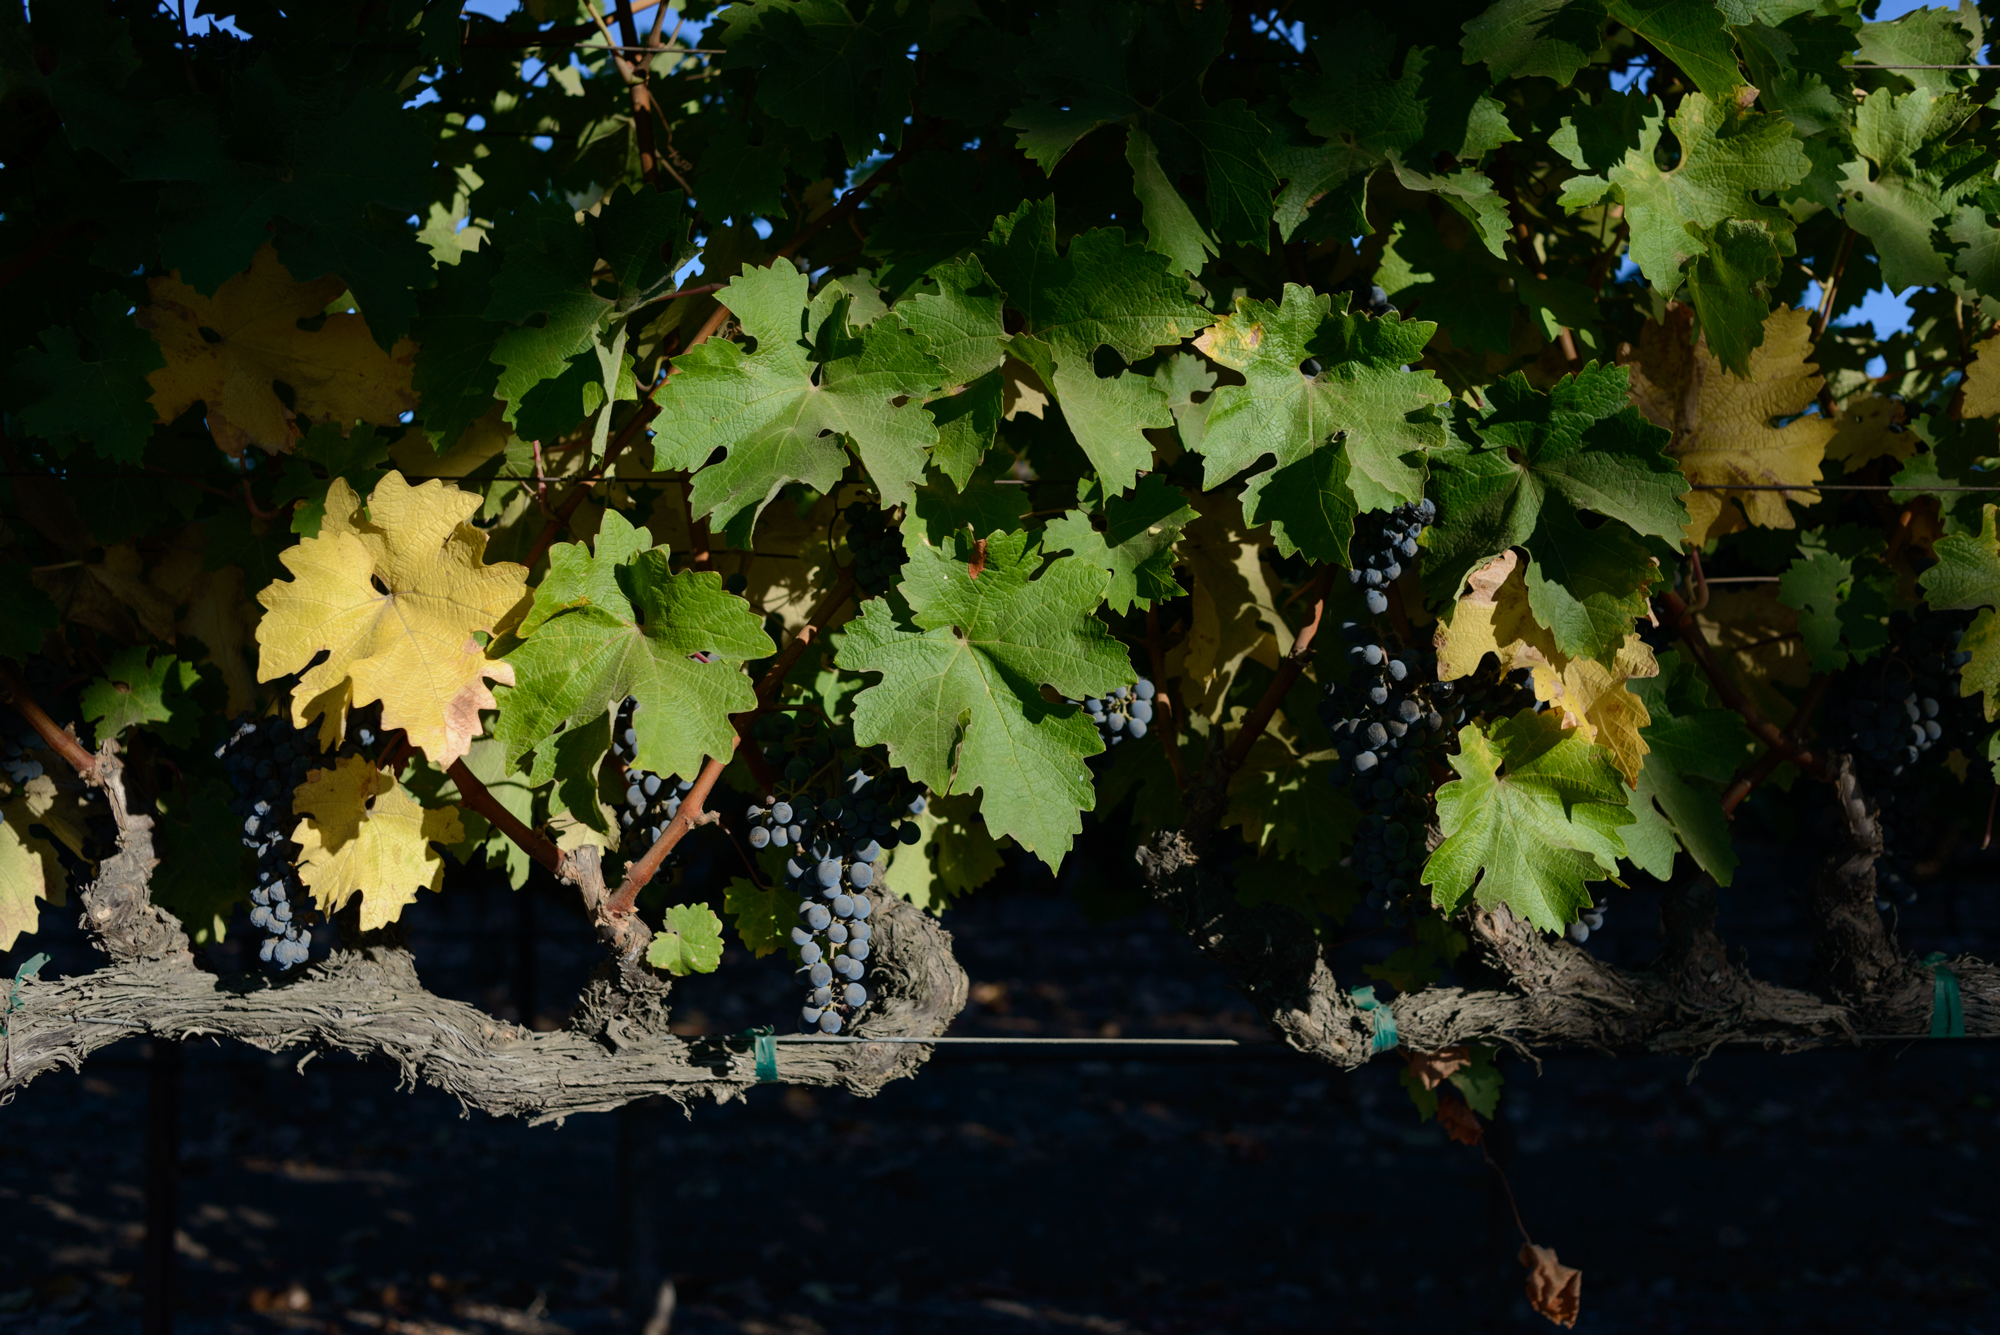 Vinescapes_11.jpg